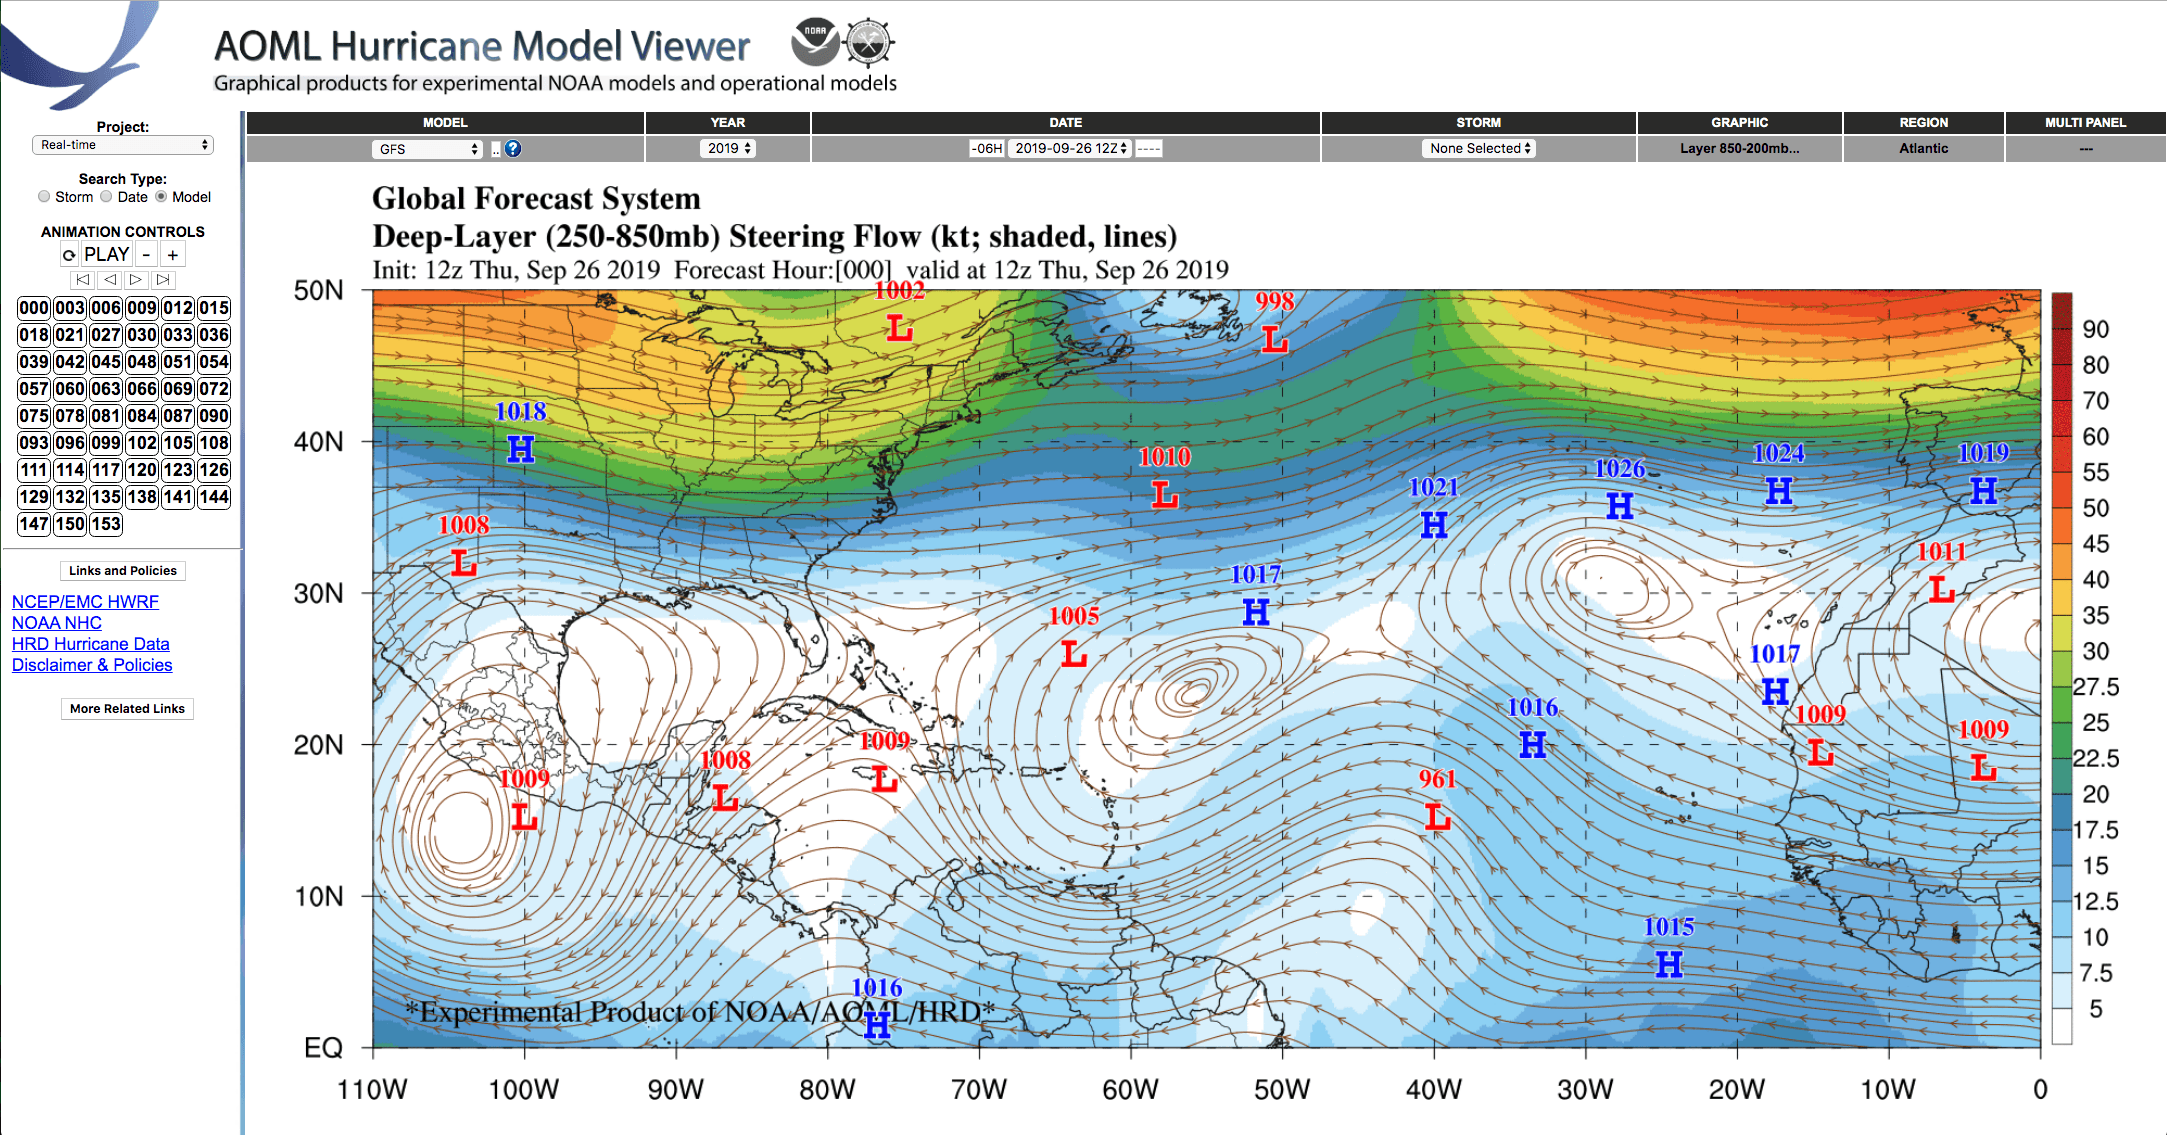 Steering Flow in the Atlantic from HWRF B